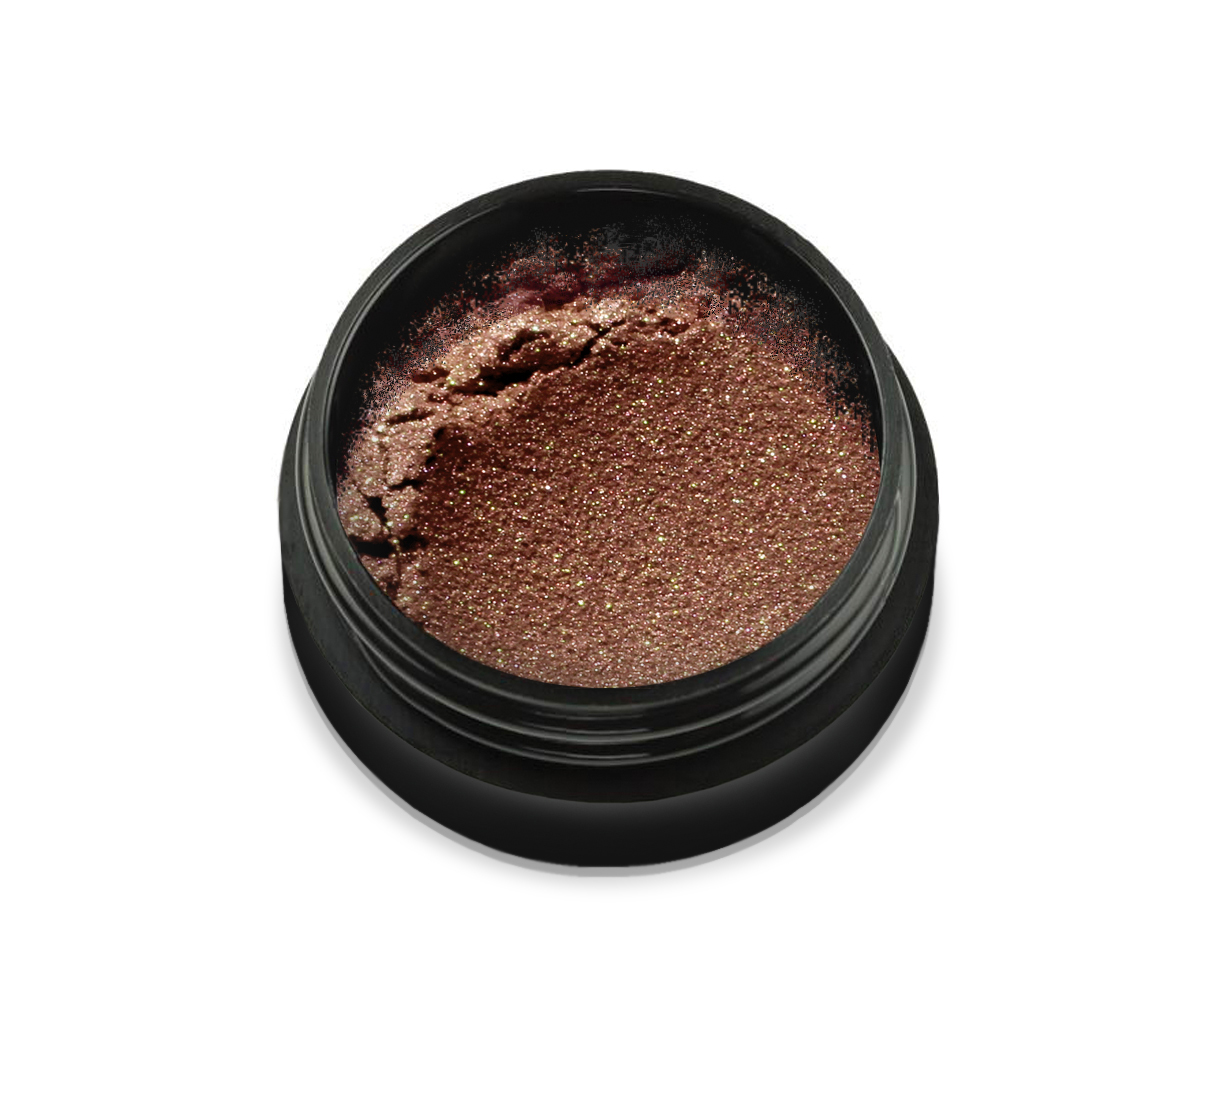 "6811 Pudra cu pigmenti 'Didier Lab"", bronze brown 2,5g/Pigment powder 'Didier Lab"", bronze brown"